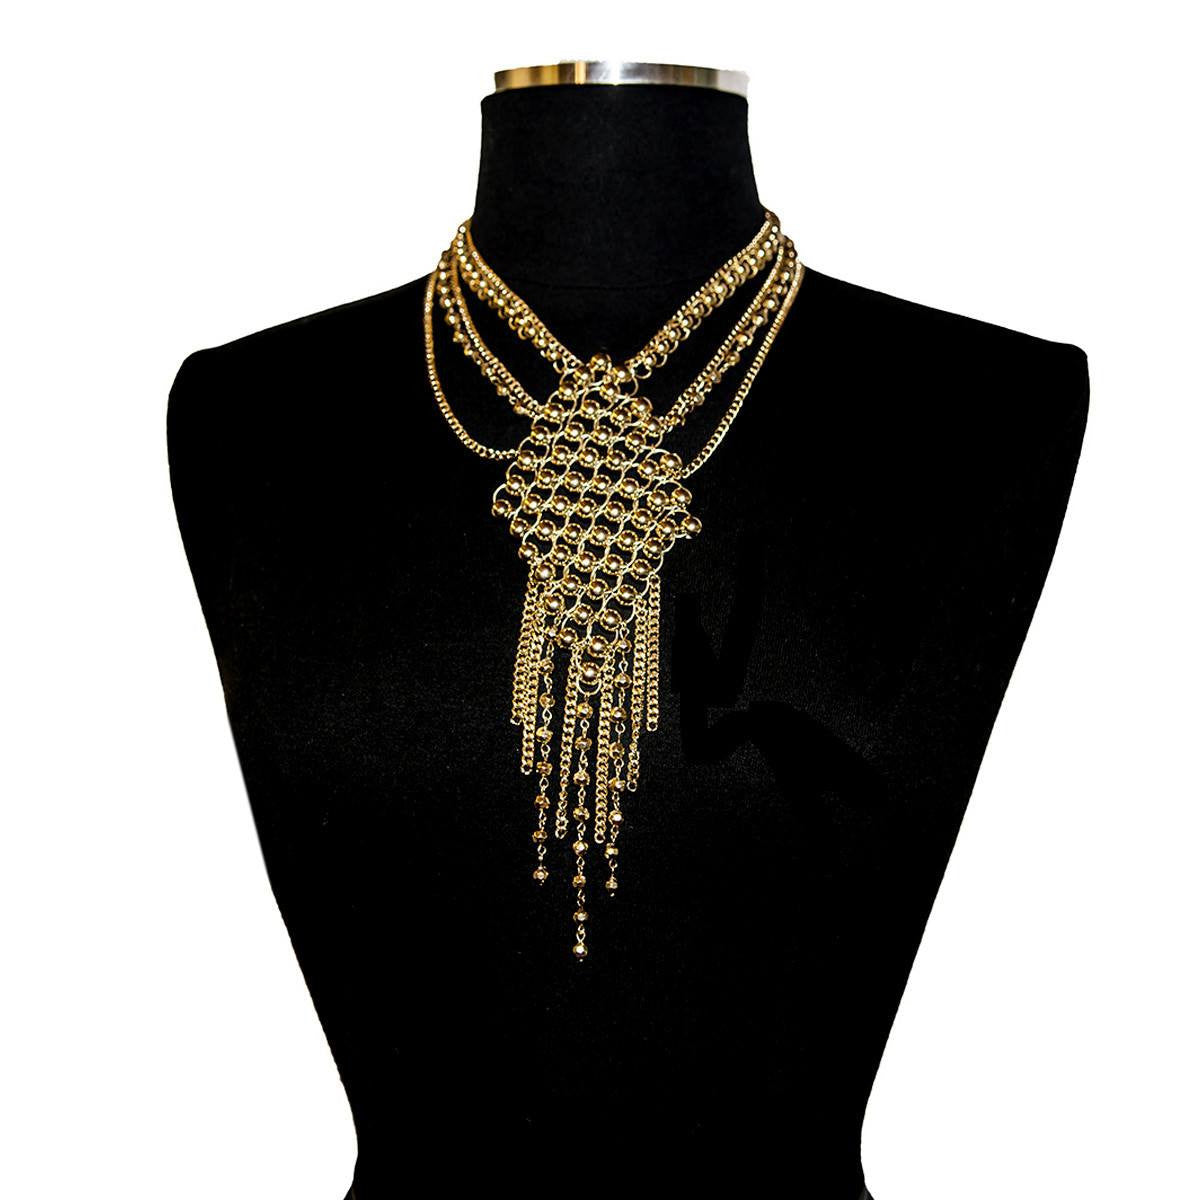 Gold Chain & Bead Bib Necklace, Nieman Marcus New Old Stock 3